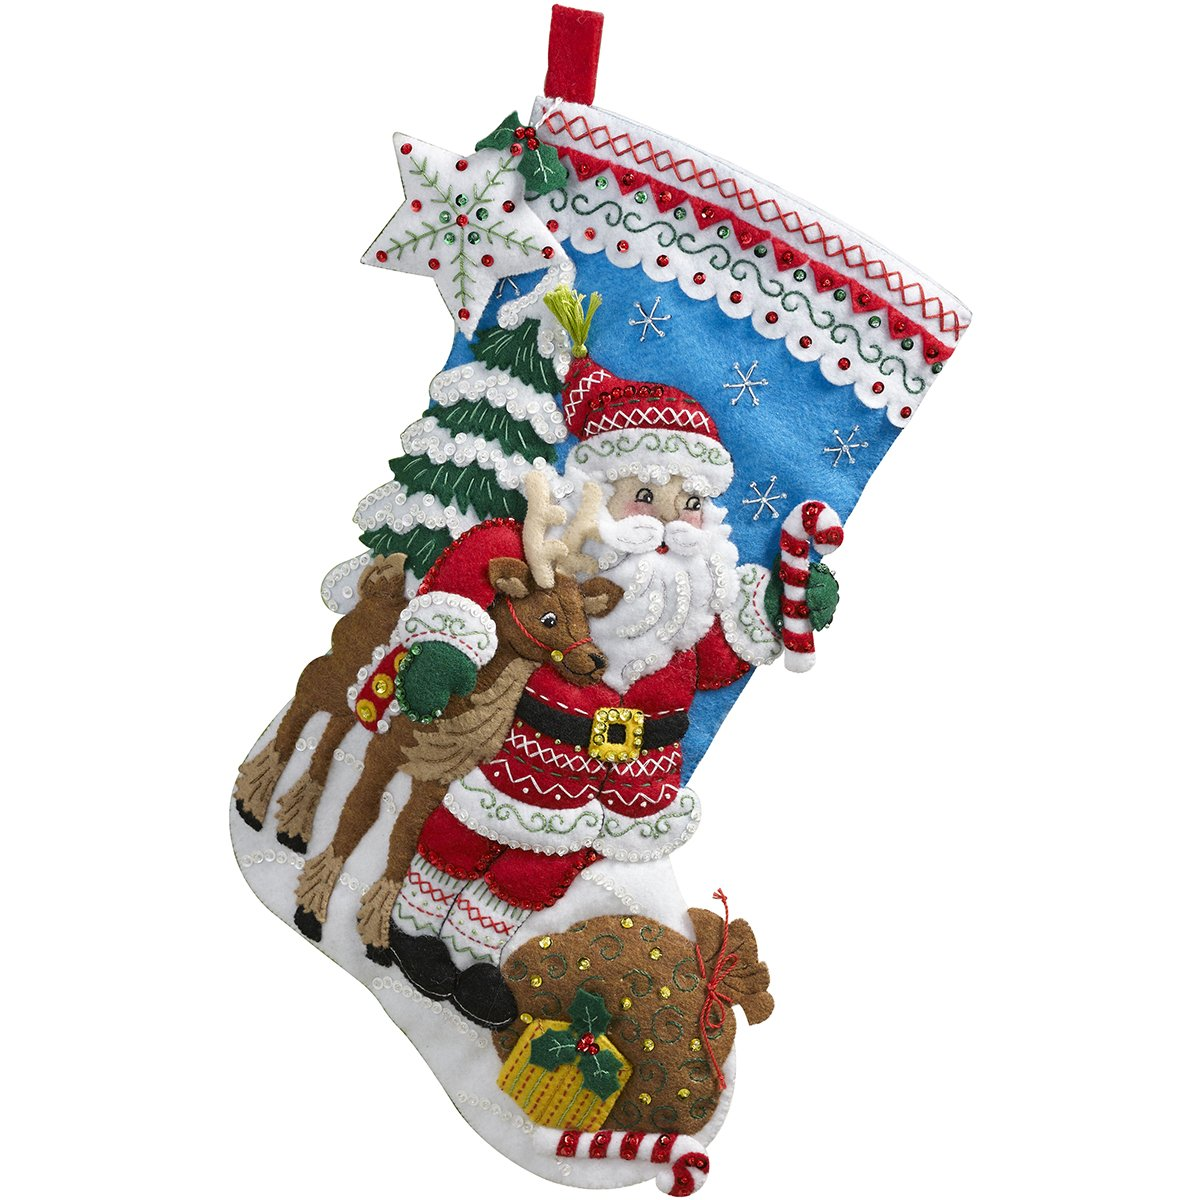 Amazon.com: Bucilla 18-Inch Christmas Stocking Felt Applique Kit ...